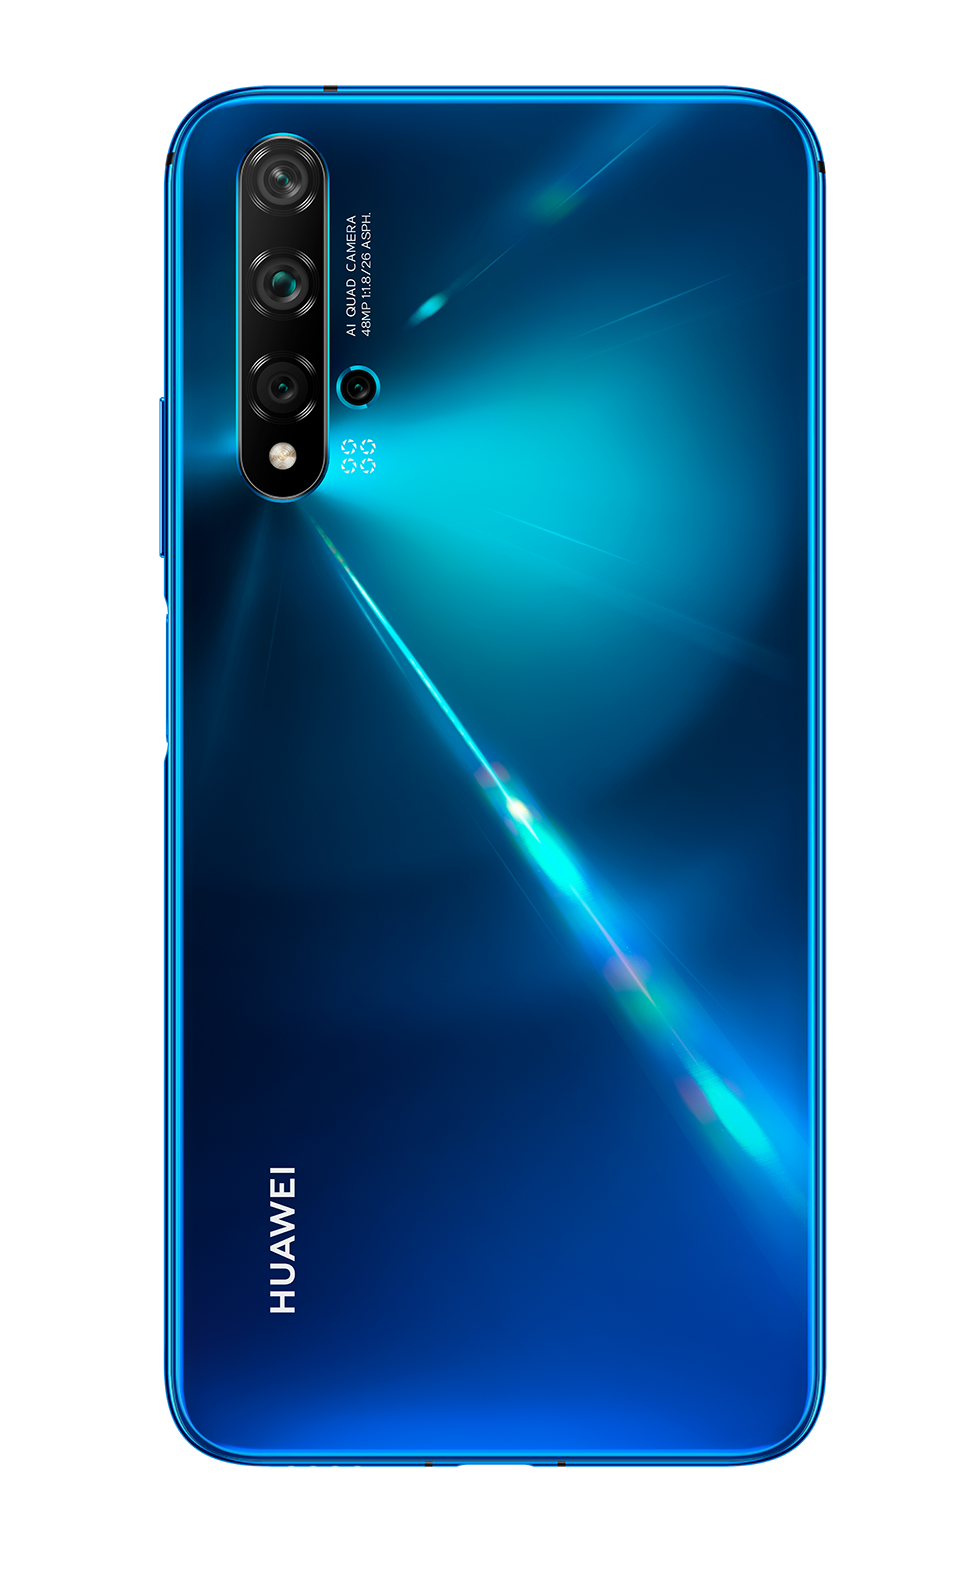 Huawei Nova 5t Launched In The Philippines